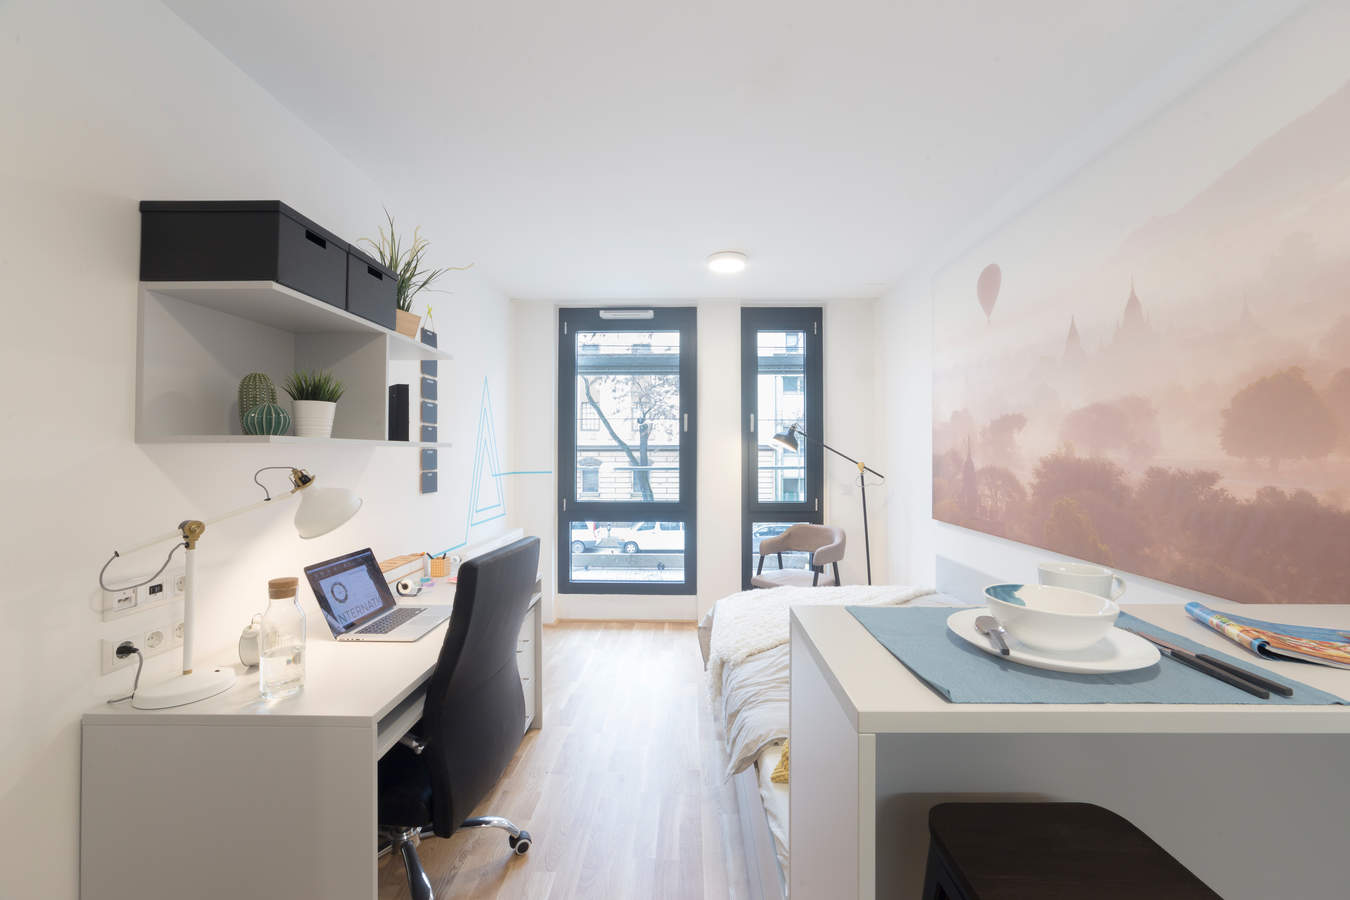 Wien-studentenapartment_18